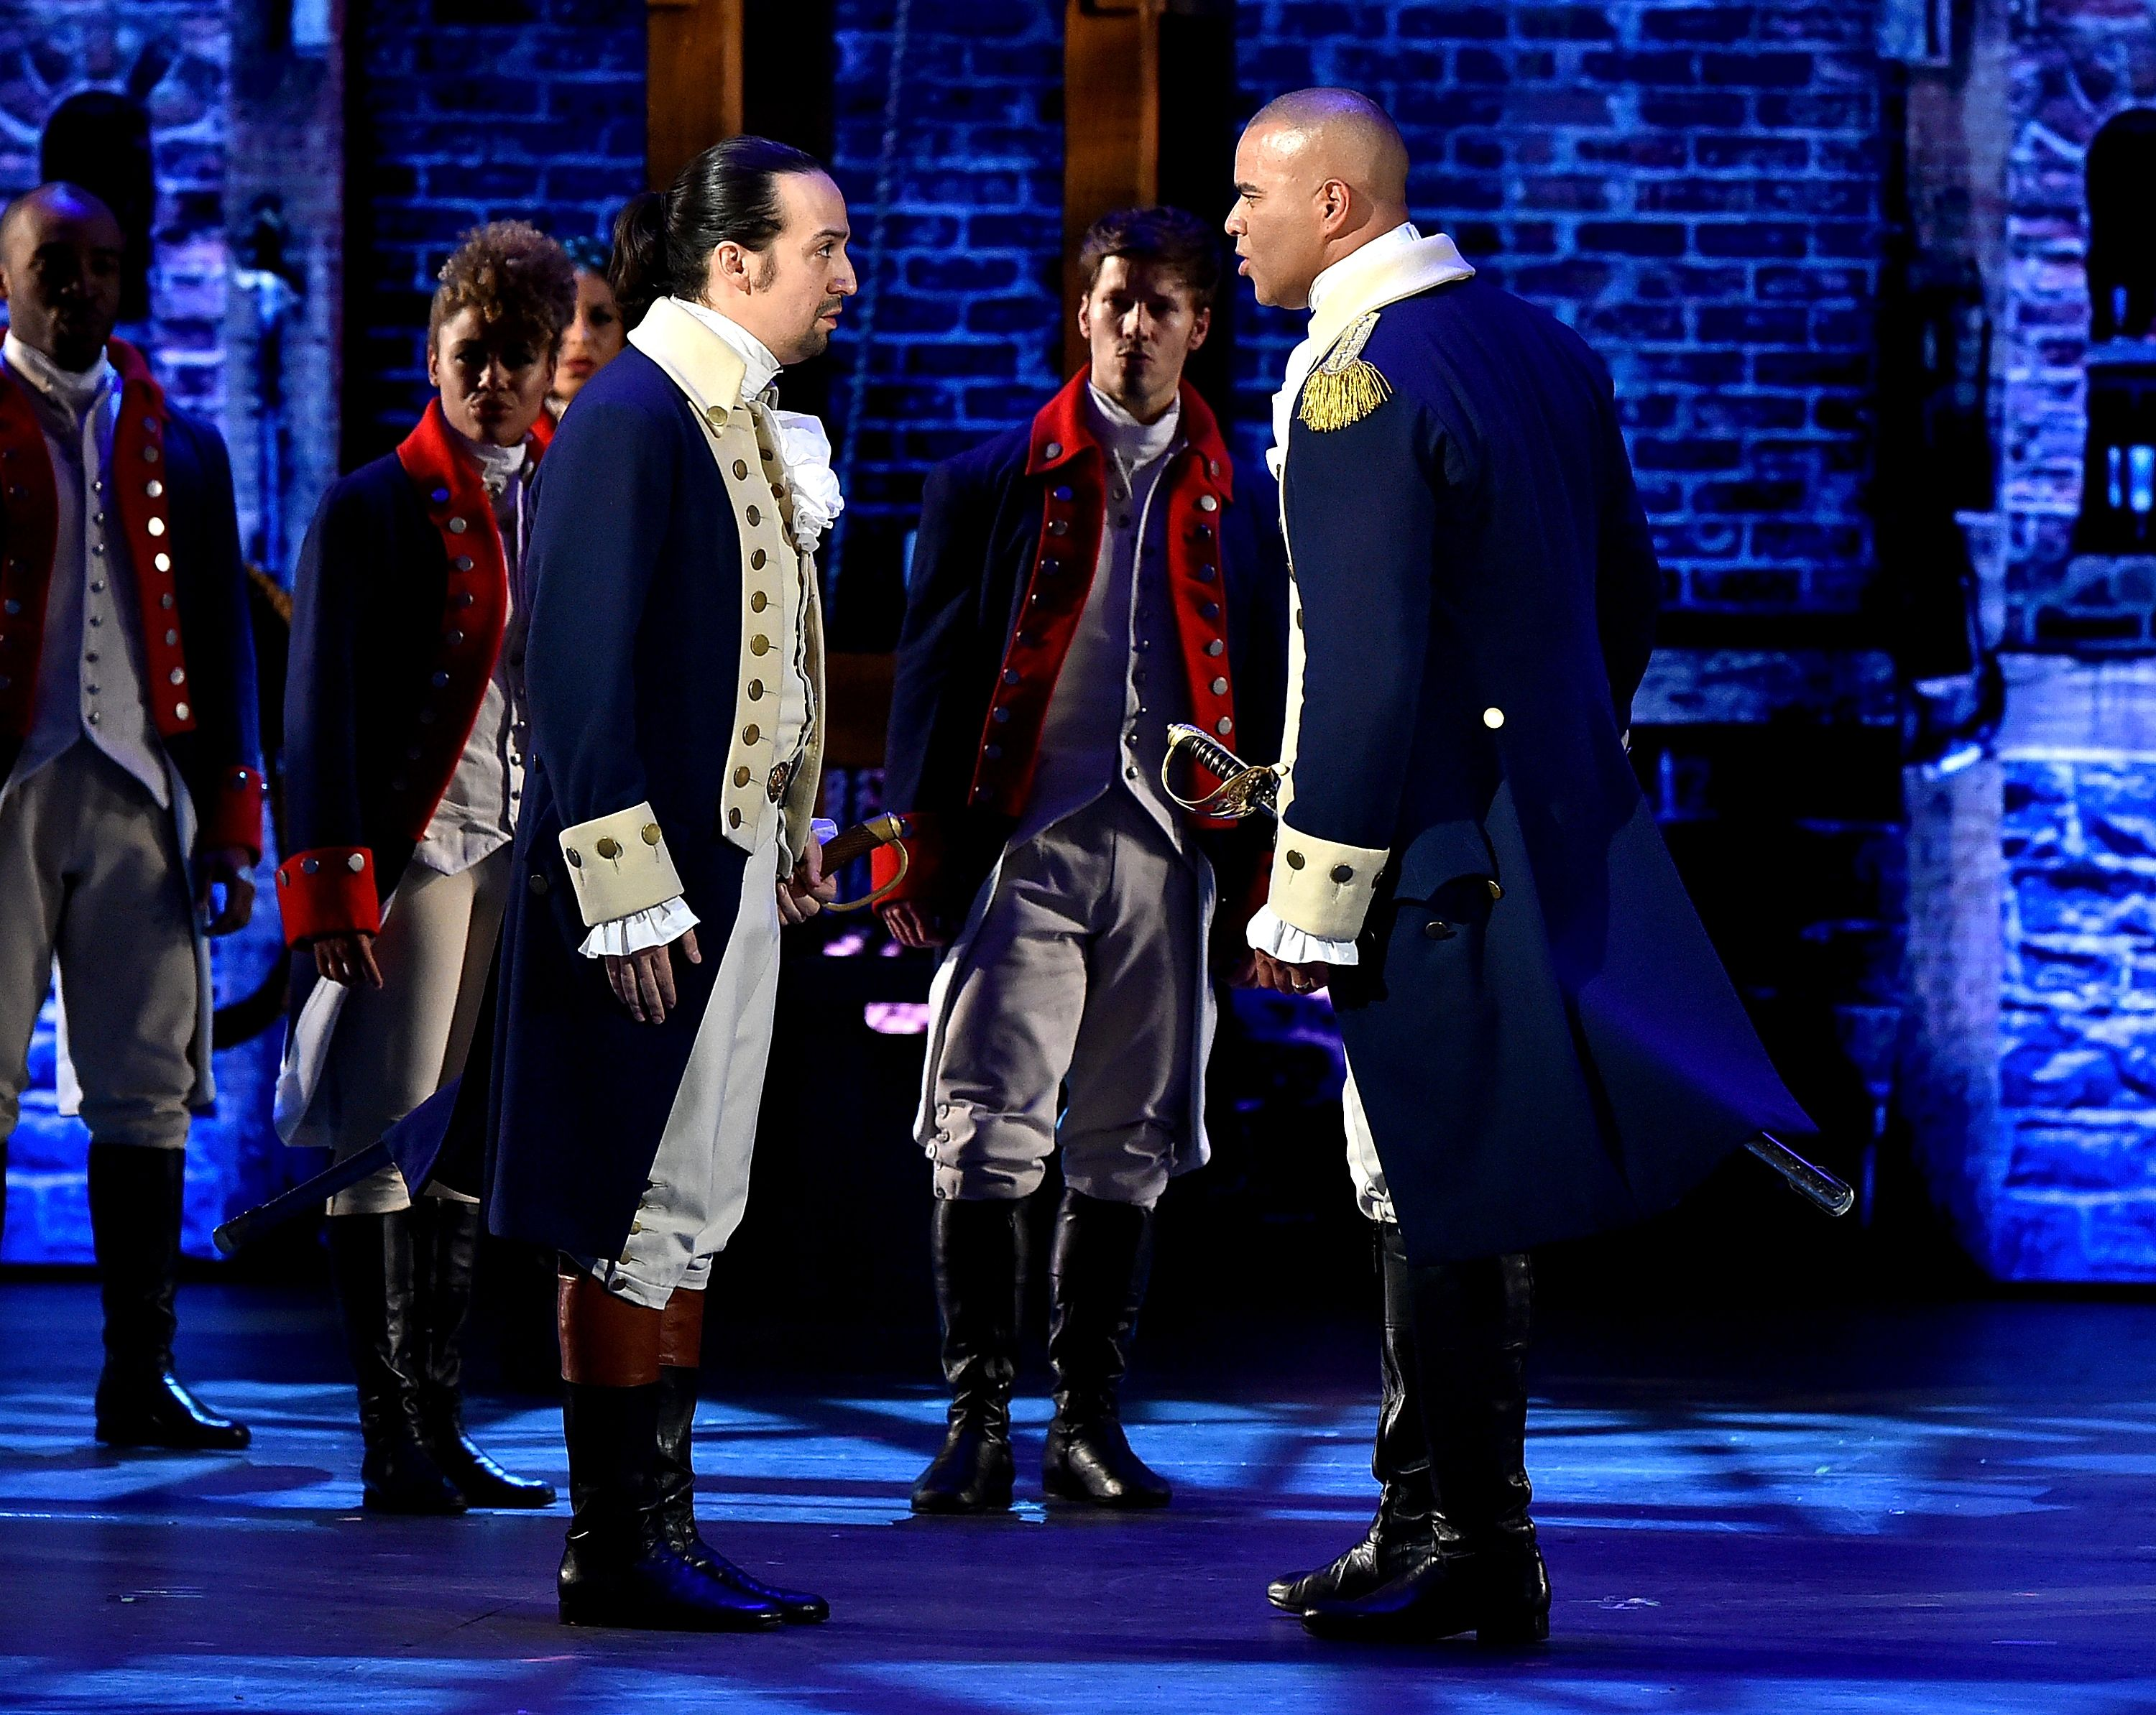 """Lin-Manuel Miranda and Christopher Jackson of """"Hamilton"""" onstage during the 70th Annual Tony Awards at The Beacon Theatre on June 12, 2016 in New York City.   Source: Shutterstock"""